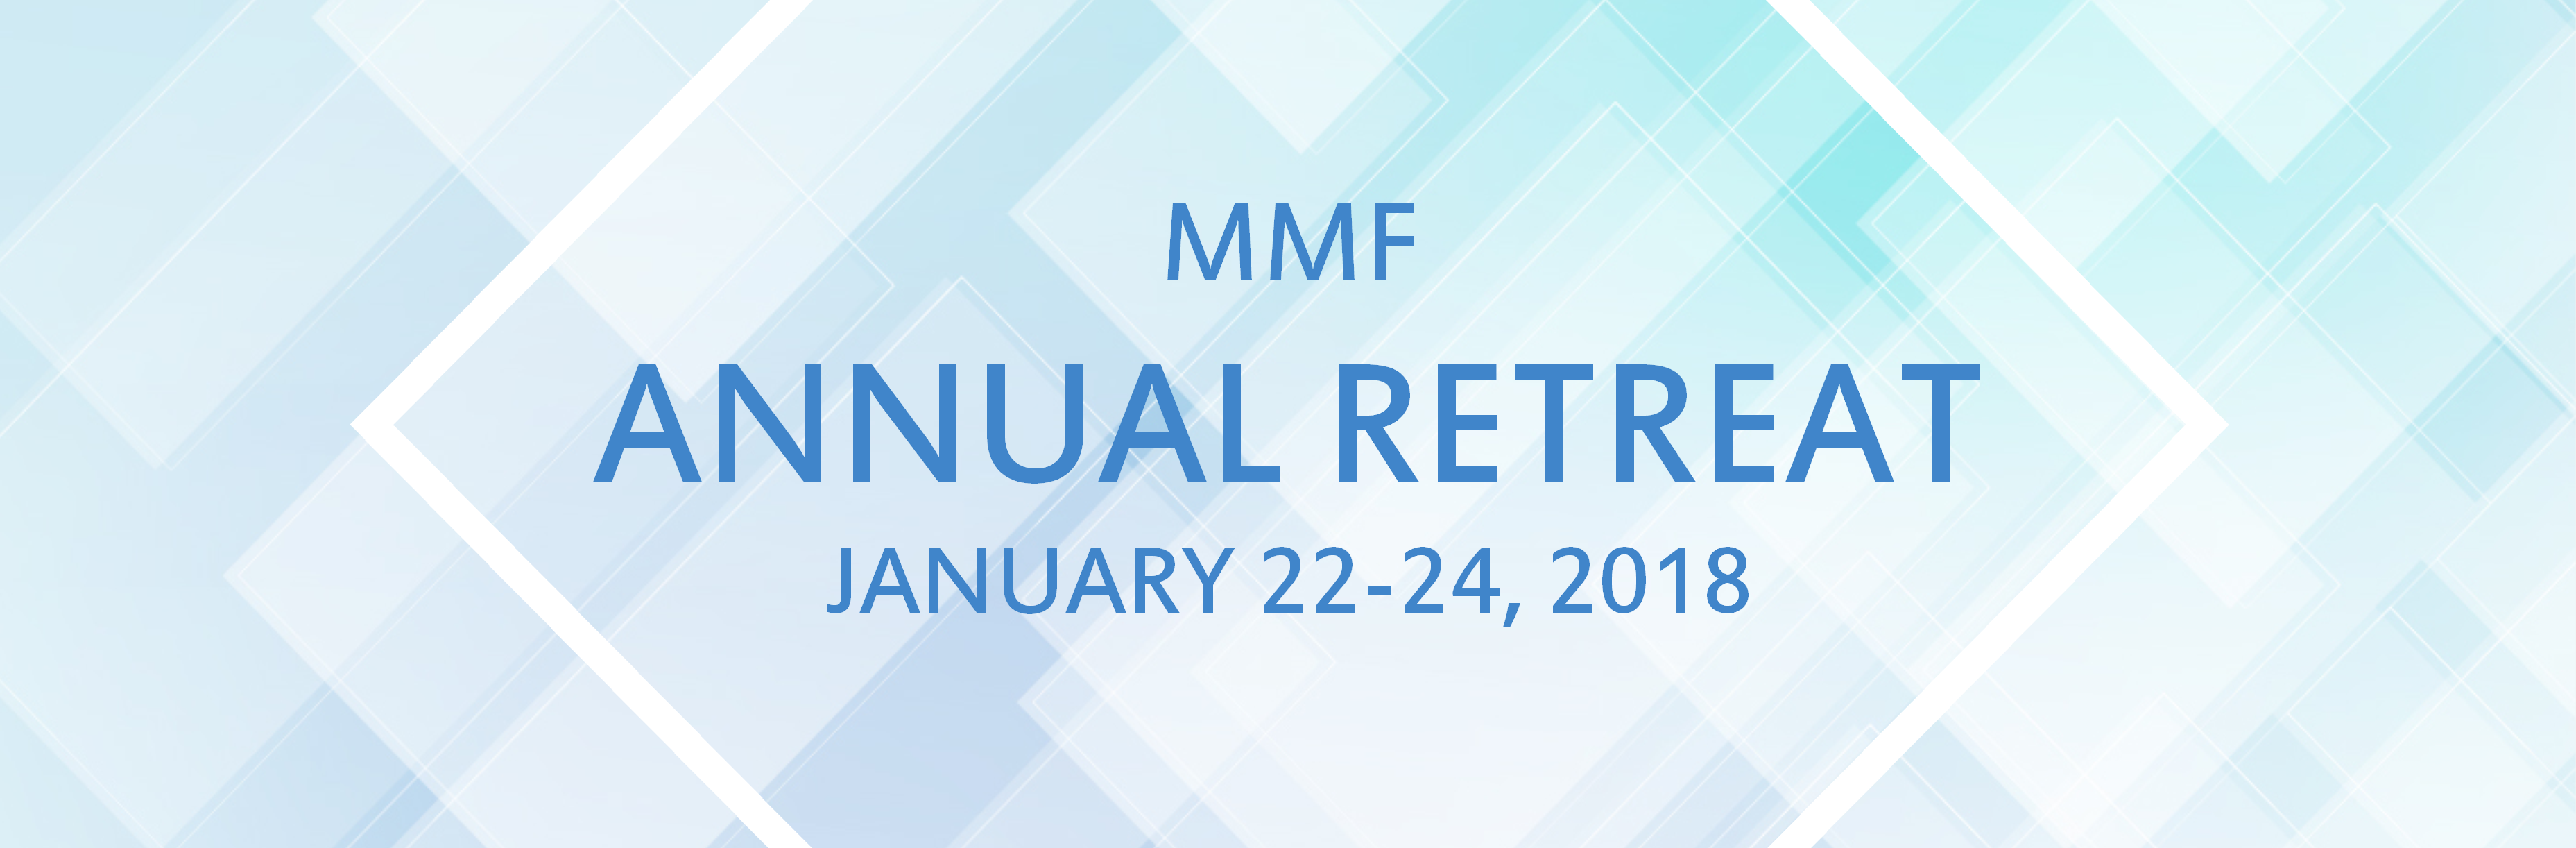 2018 Annual MMF Retreat